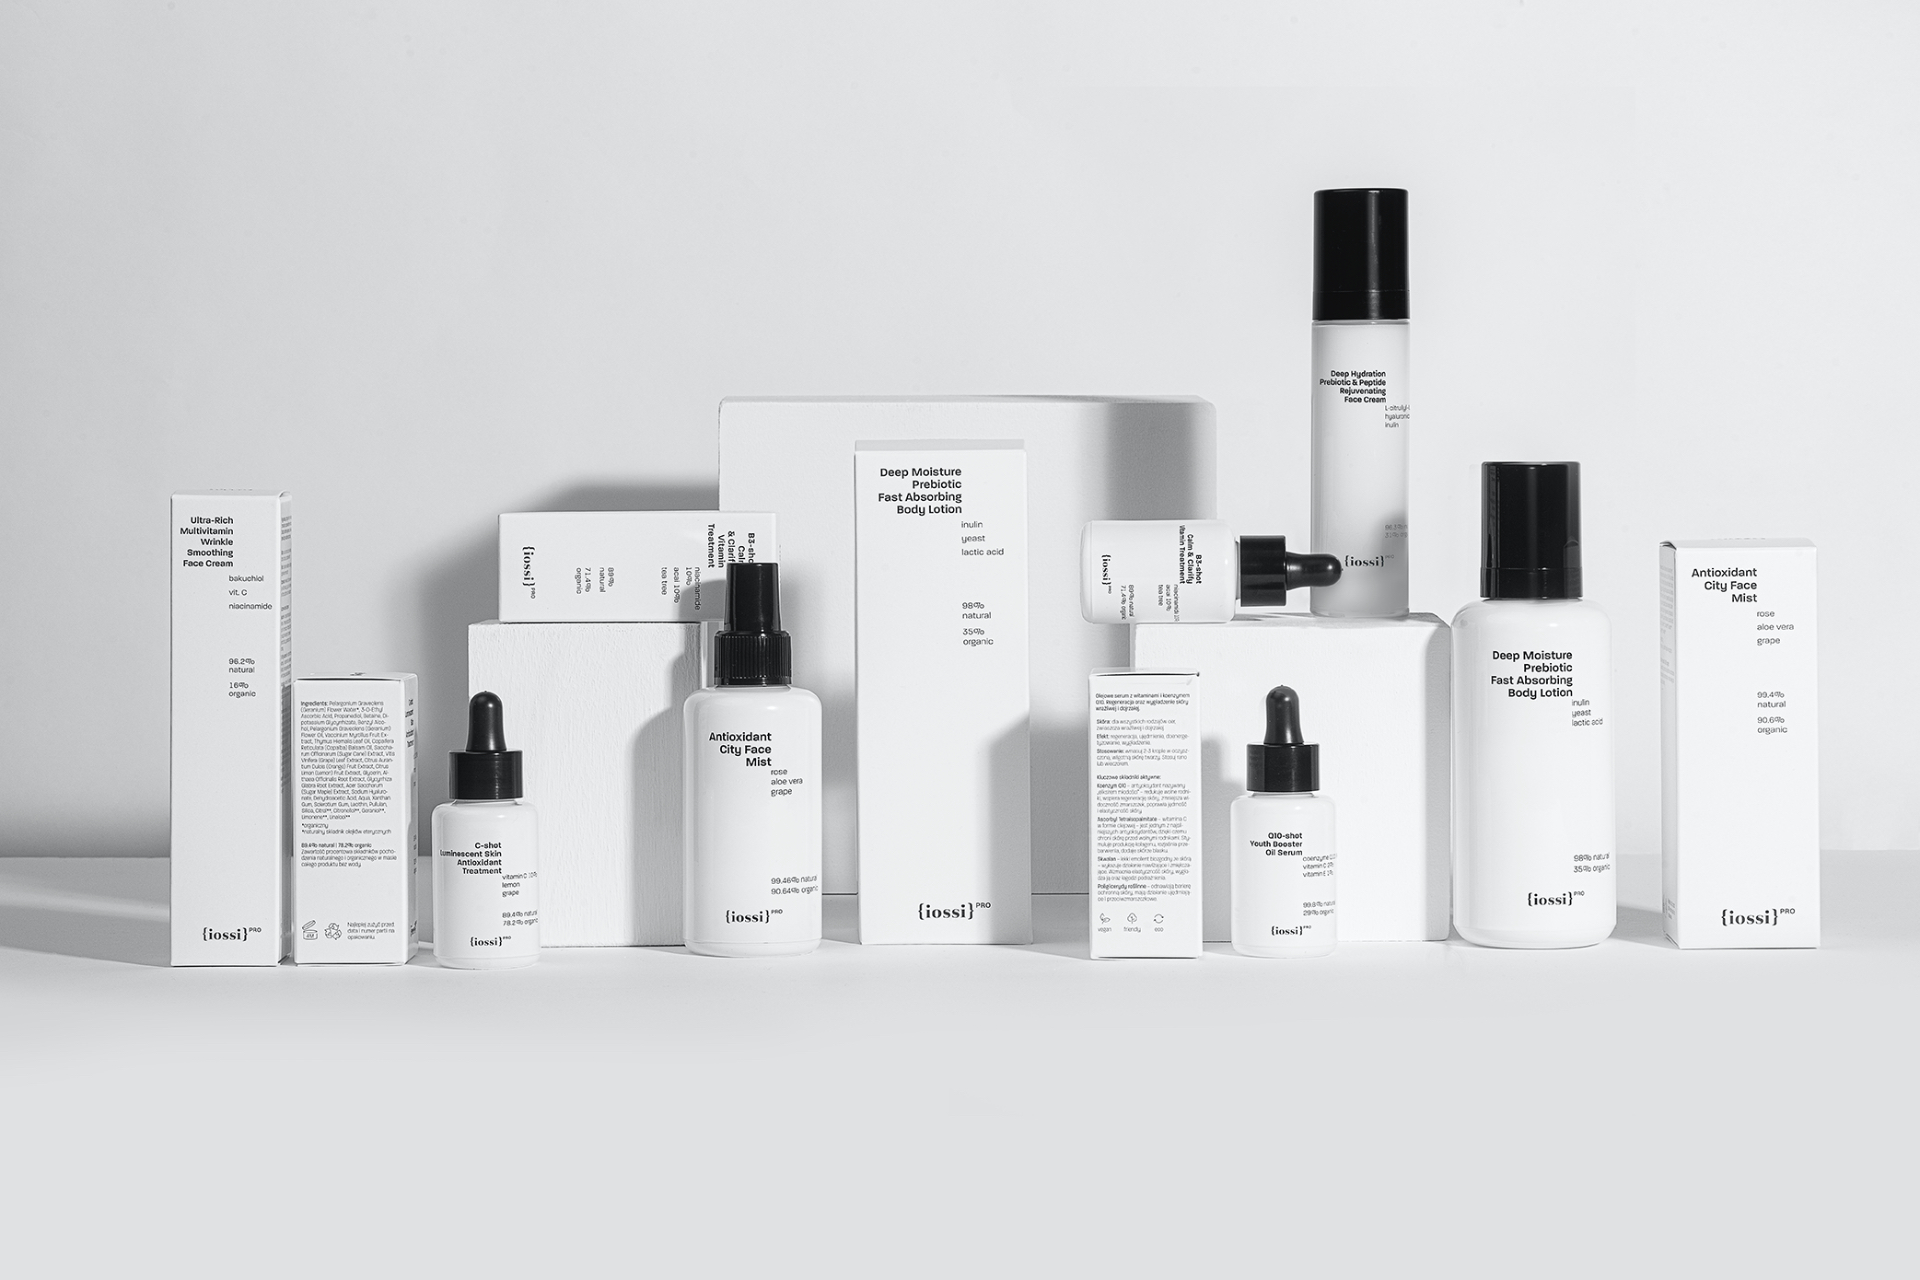 Łobzowska Studio Create Packaging Design For The Iossi Pro a Natural Skincare Cosmetics